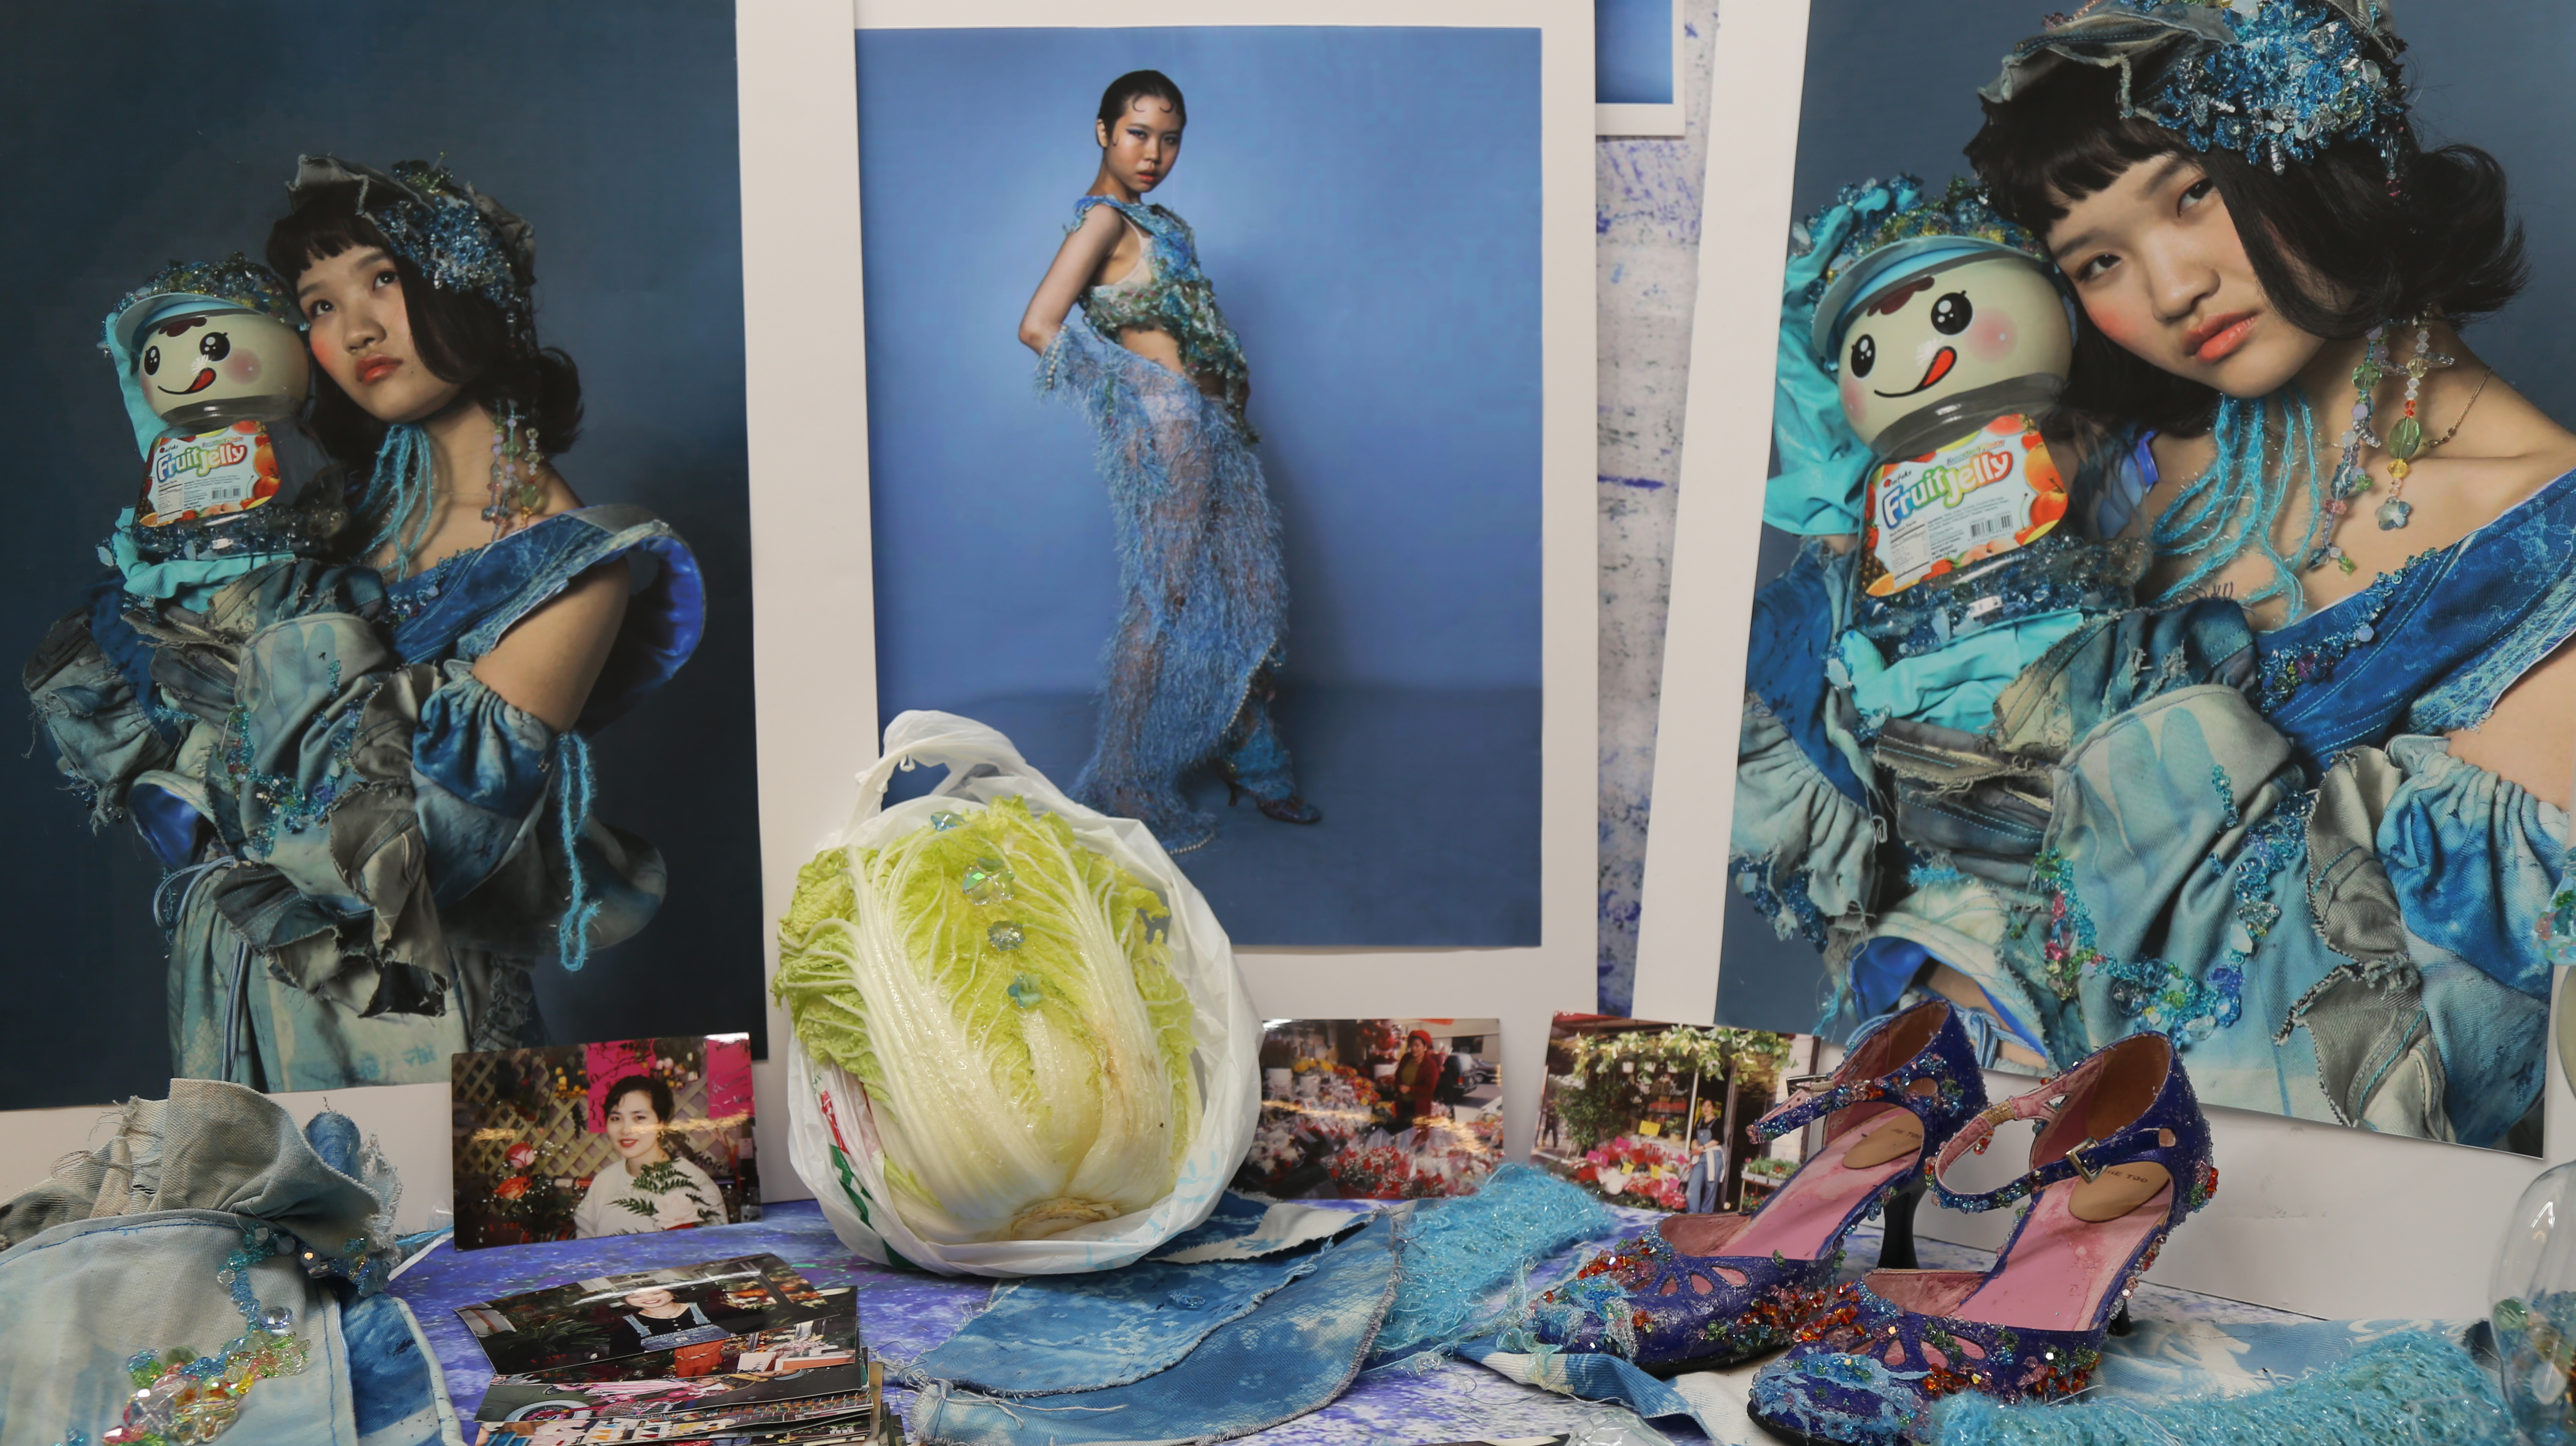 Open Studios At Parsons Discussing The Work Of Five Fashion Design Students The New School Free Press